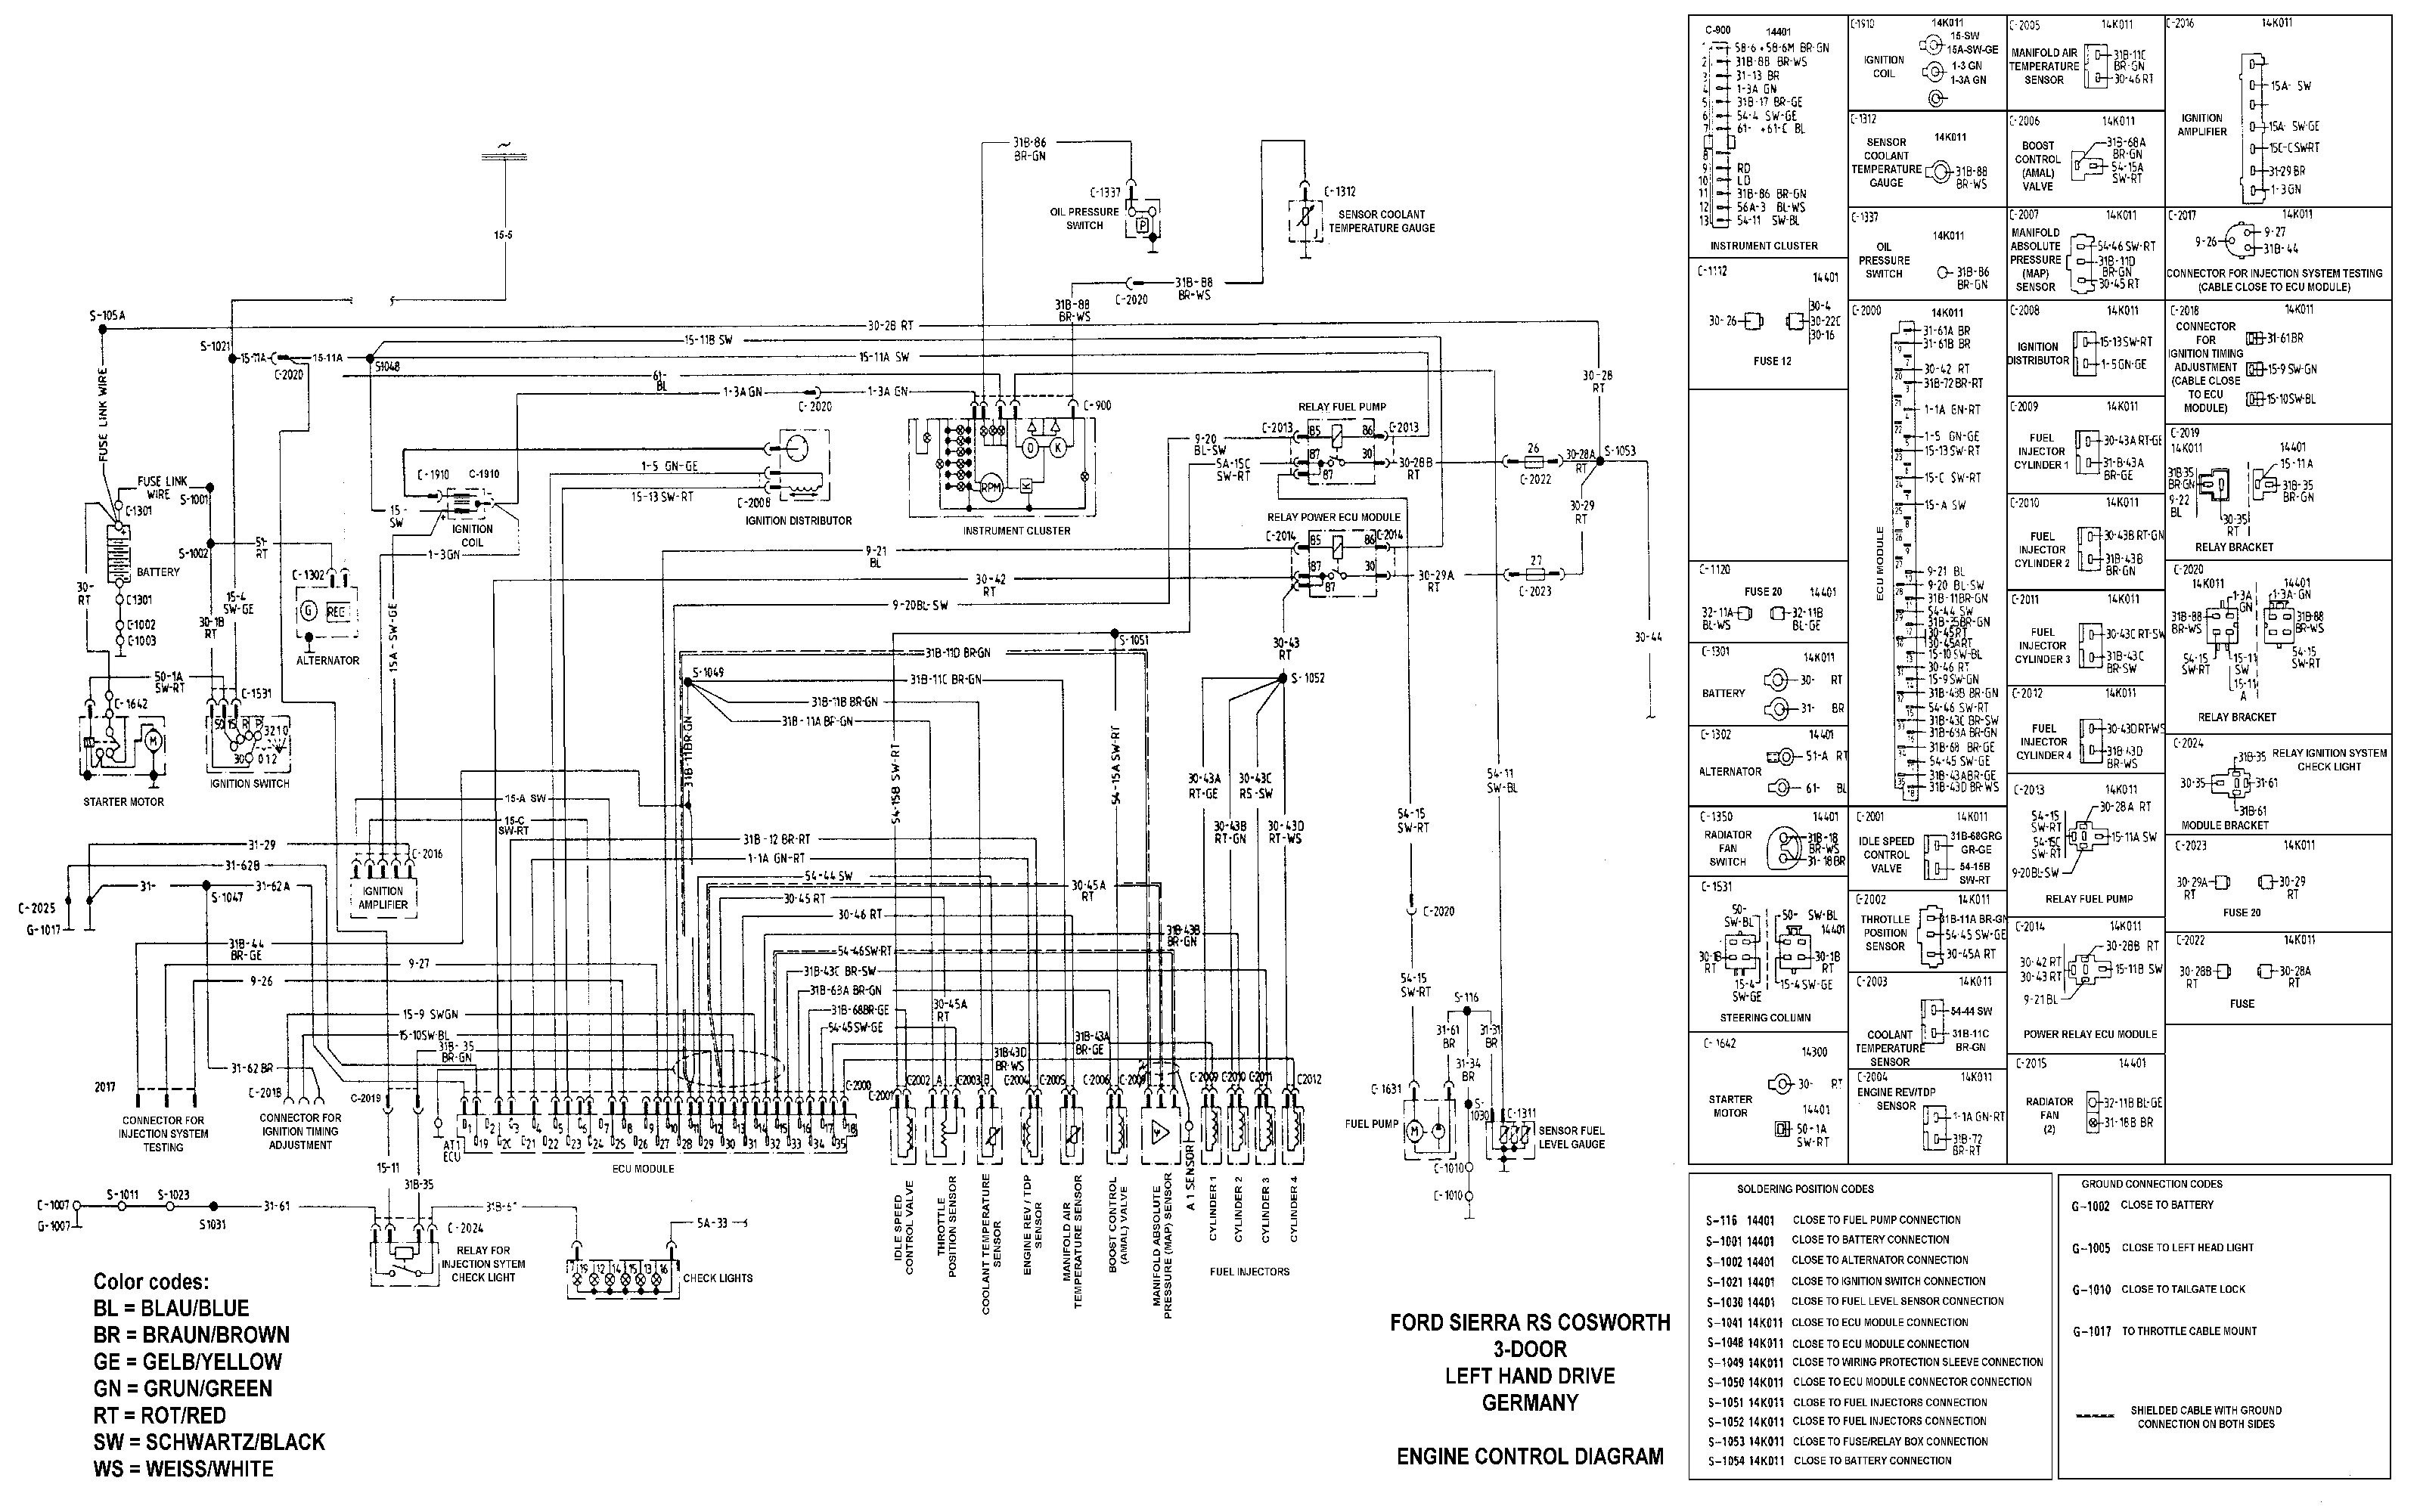 2006 ford Focus Engine Diagram 2011 ford Fiesta Engine Diagram Best ford  Fiesta Mk7 Od 2008